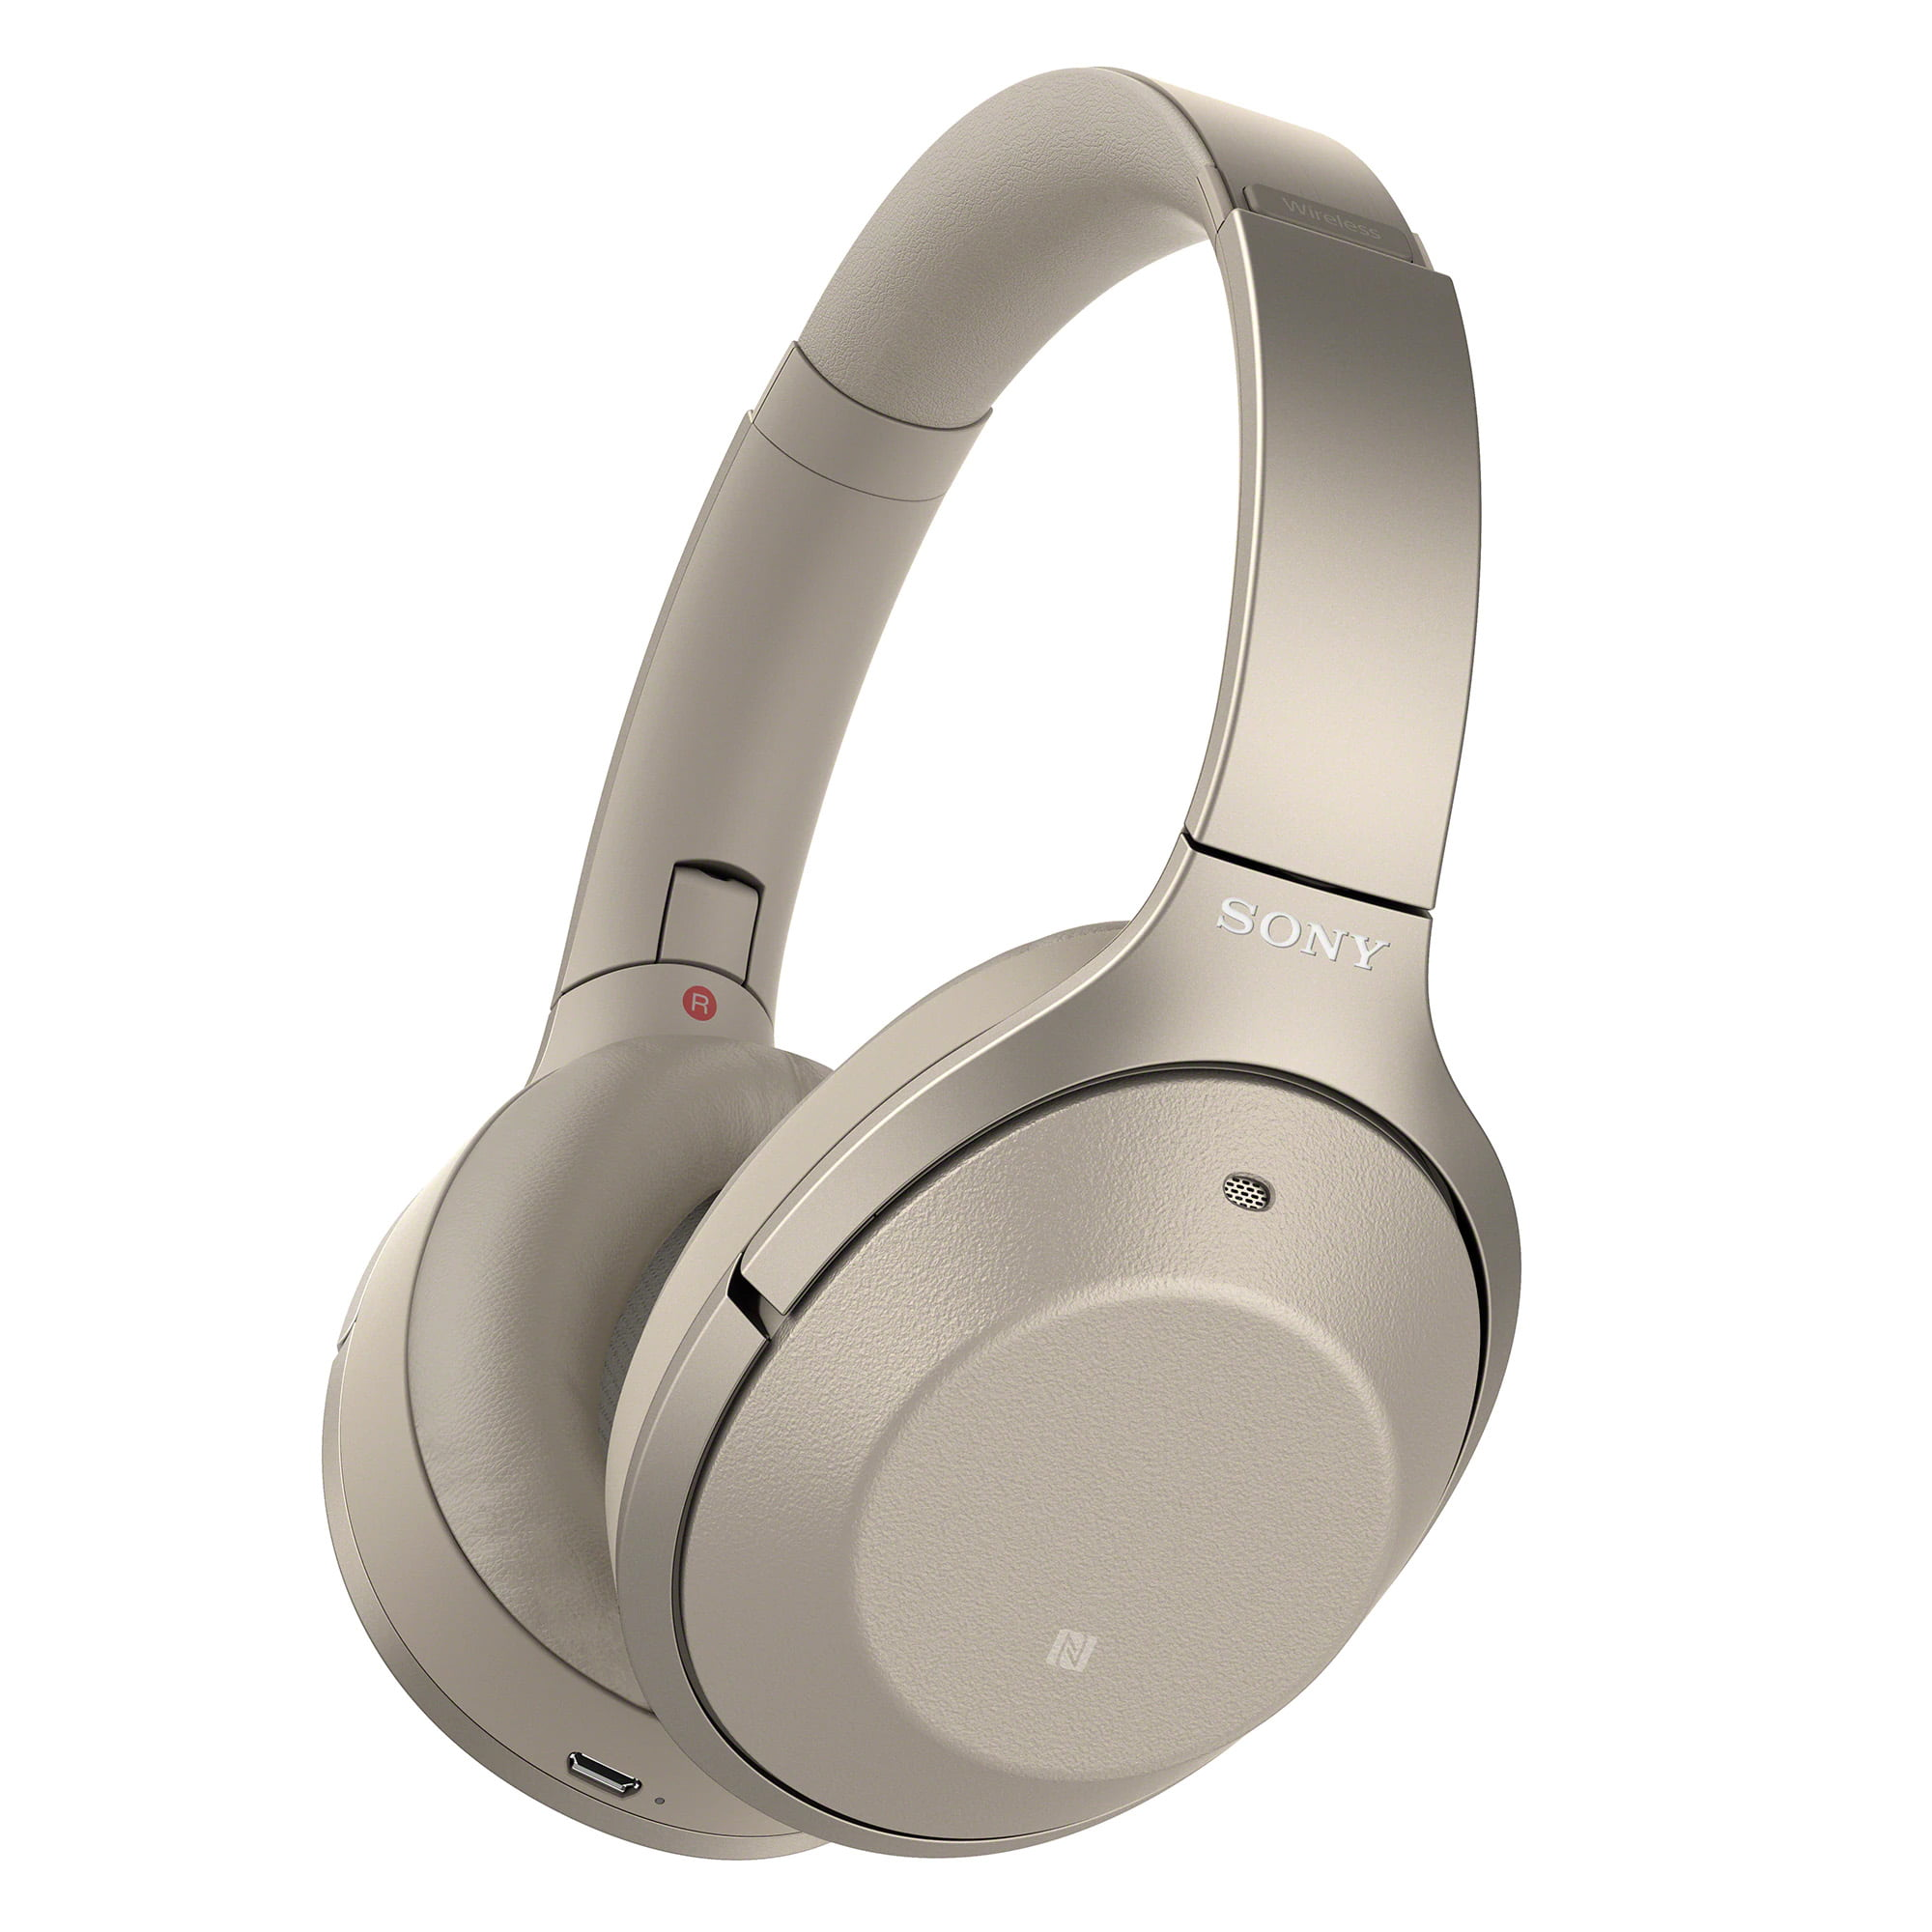 Casti On-ear Sony WH-1000XM2N, Noise cancelling, Hi-Res, Bluetooth, NFC, Wireless, Gold